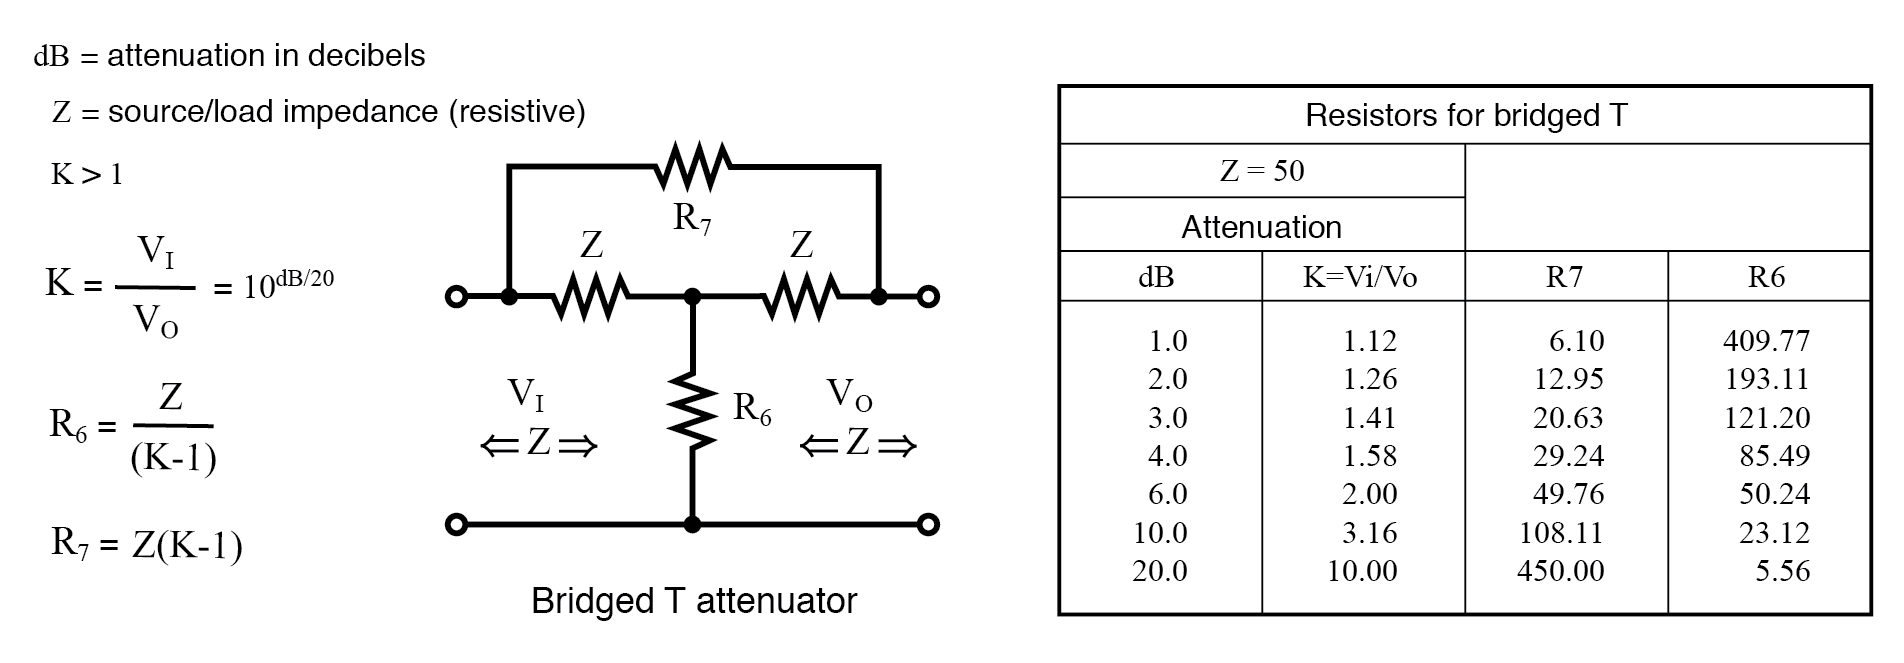 Formulas and abbreviated table for bridged-T attenuator section, Z = 50 Ω.